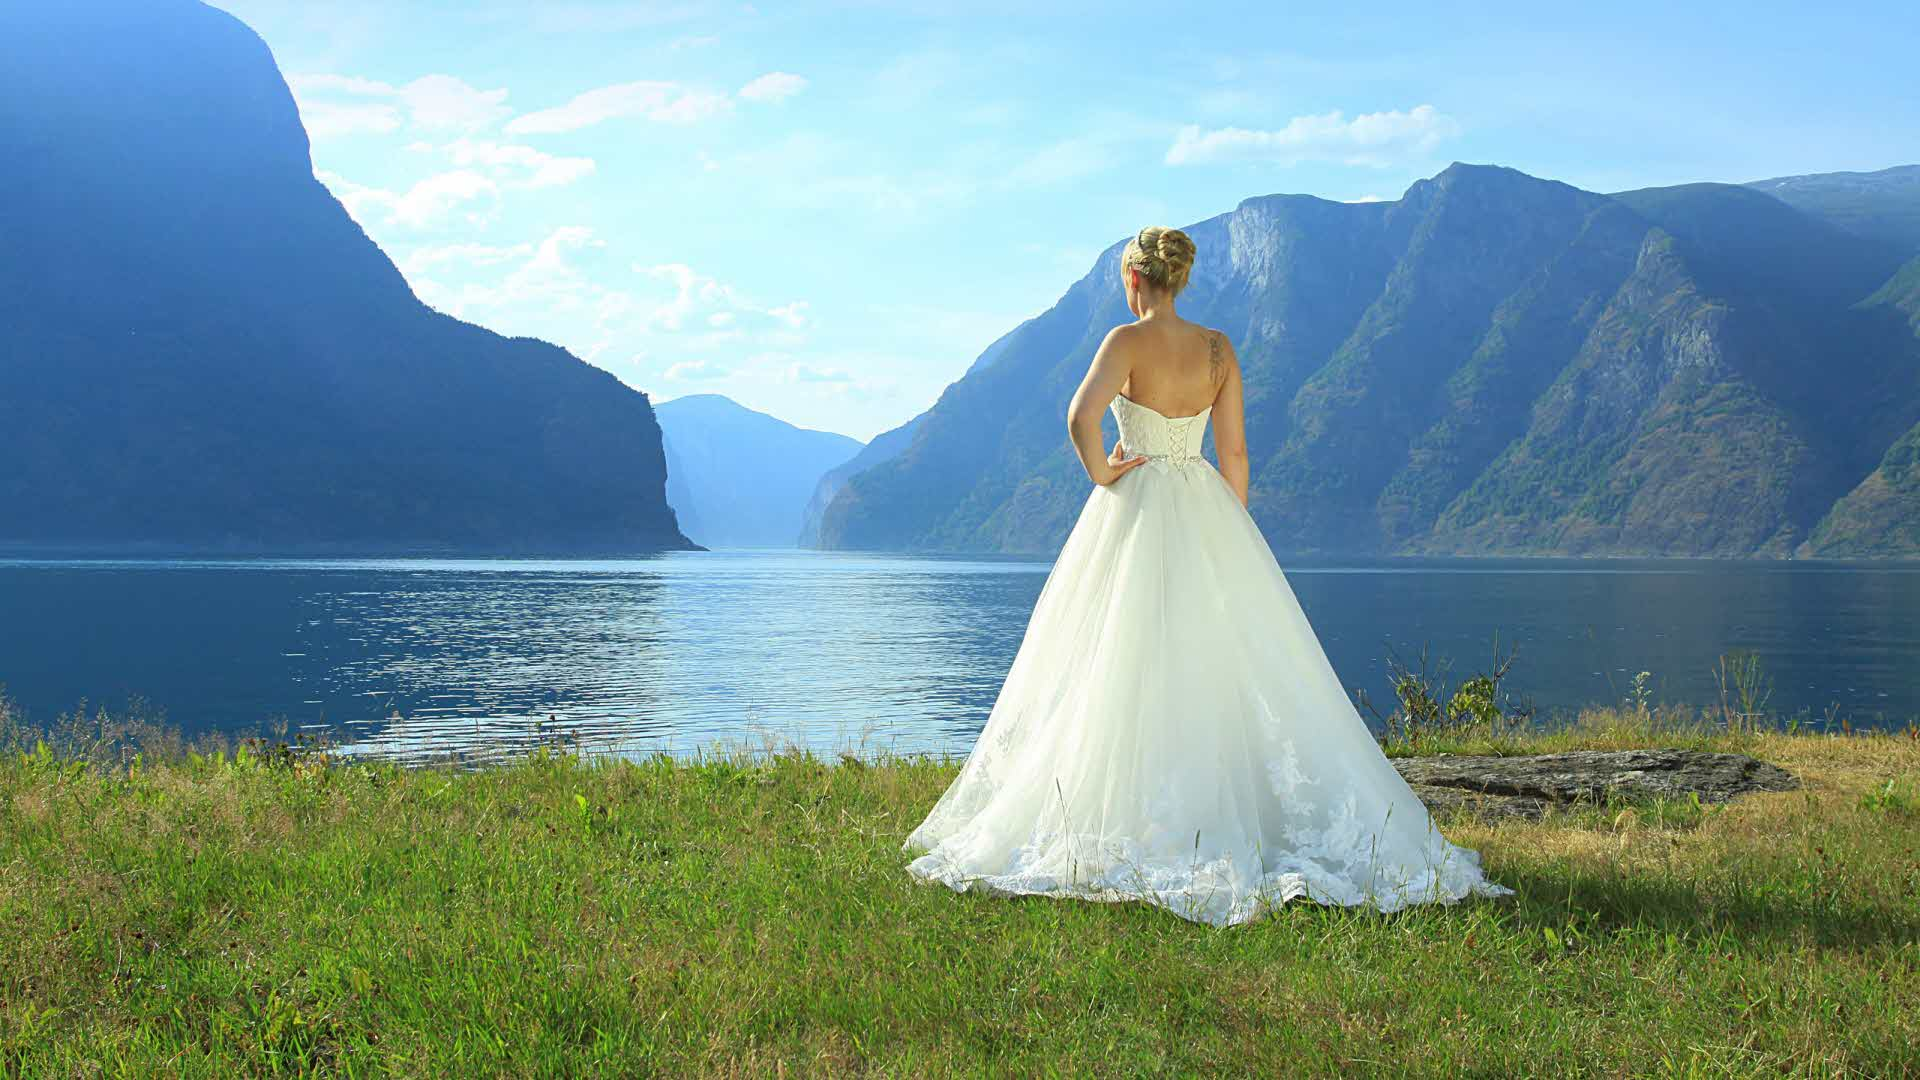 A woman in a long, white wedding dress seen from behind looking out on the Aurlandsfjord.